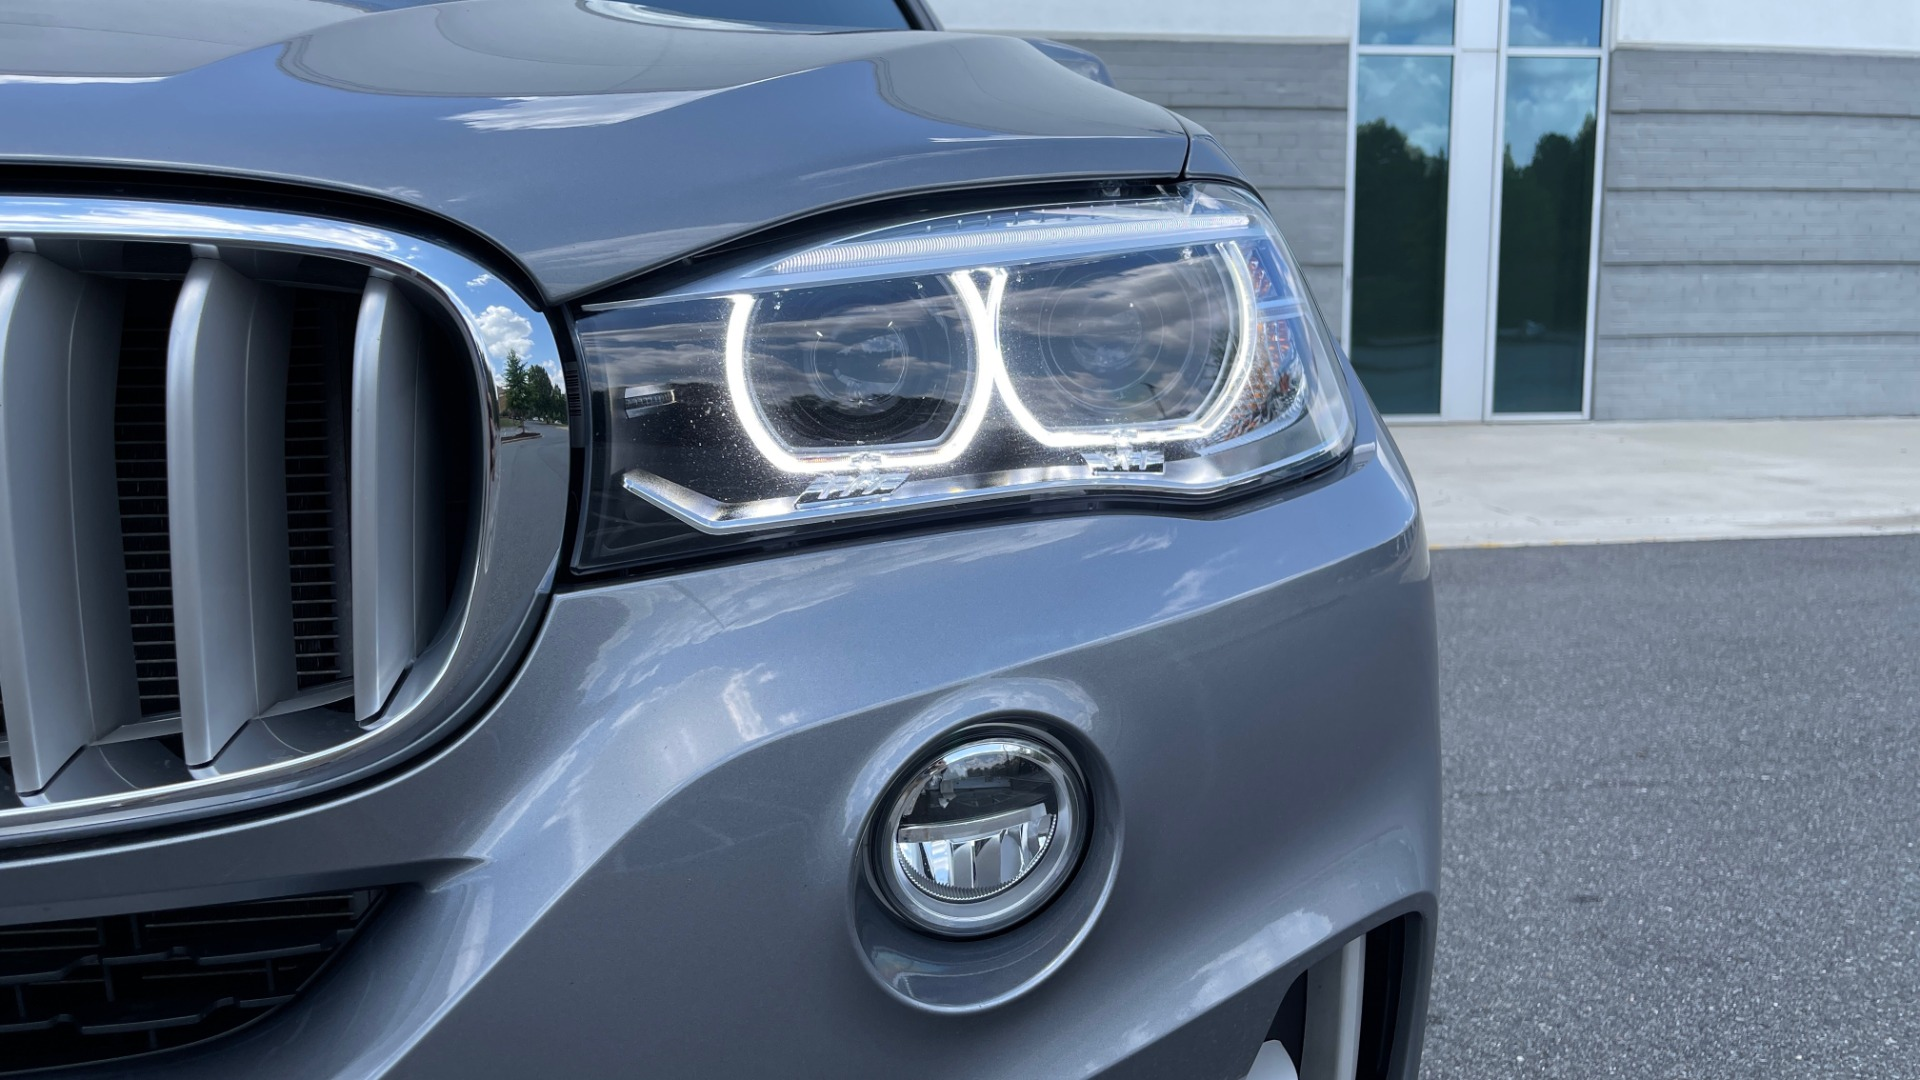 Used 2018 BMW X5 XDRIVE35I PREMIUM / DRVR ASST / WIRELESS CHARGING / CAMERAS for sale $46,995 at Formula Imports in Charlotte NC 28227 14